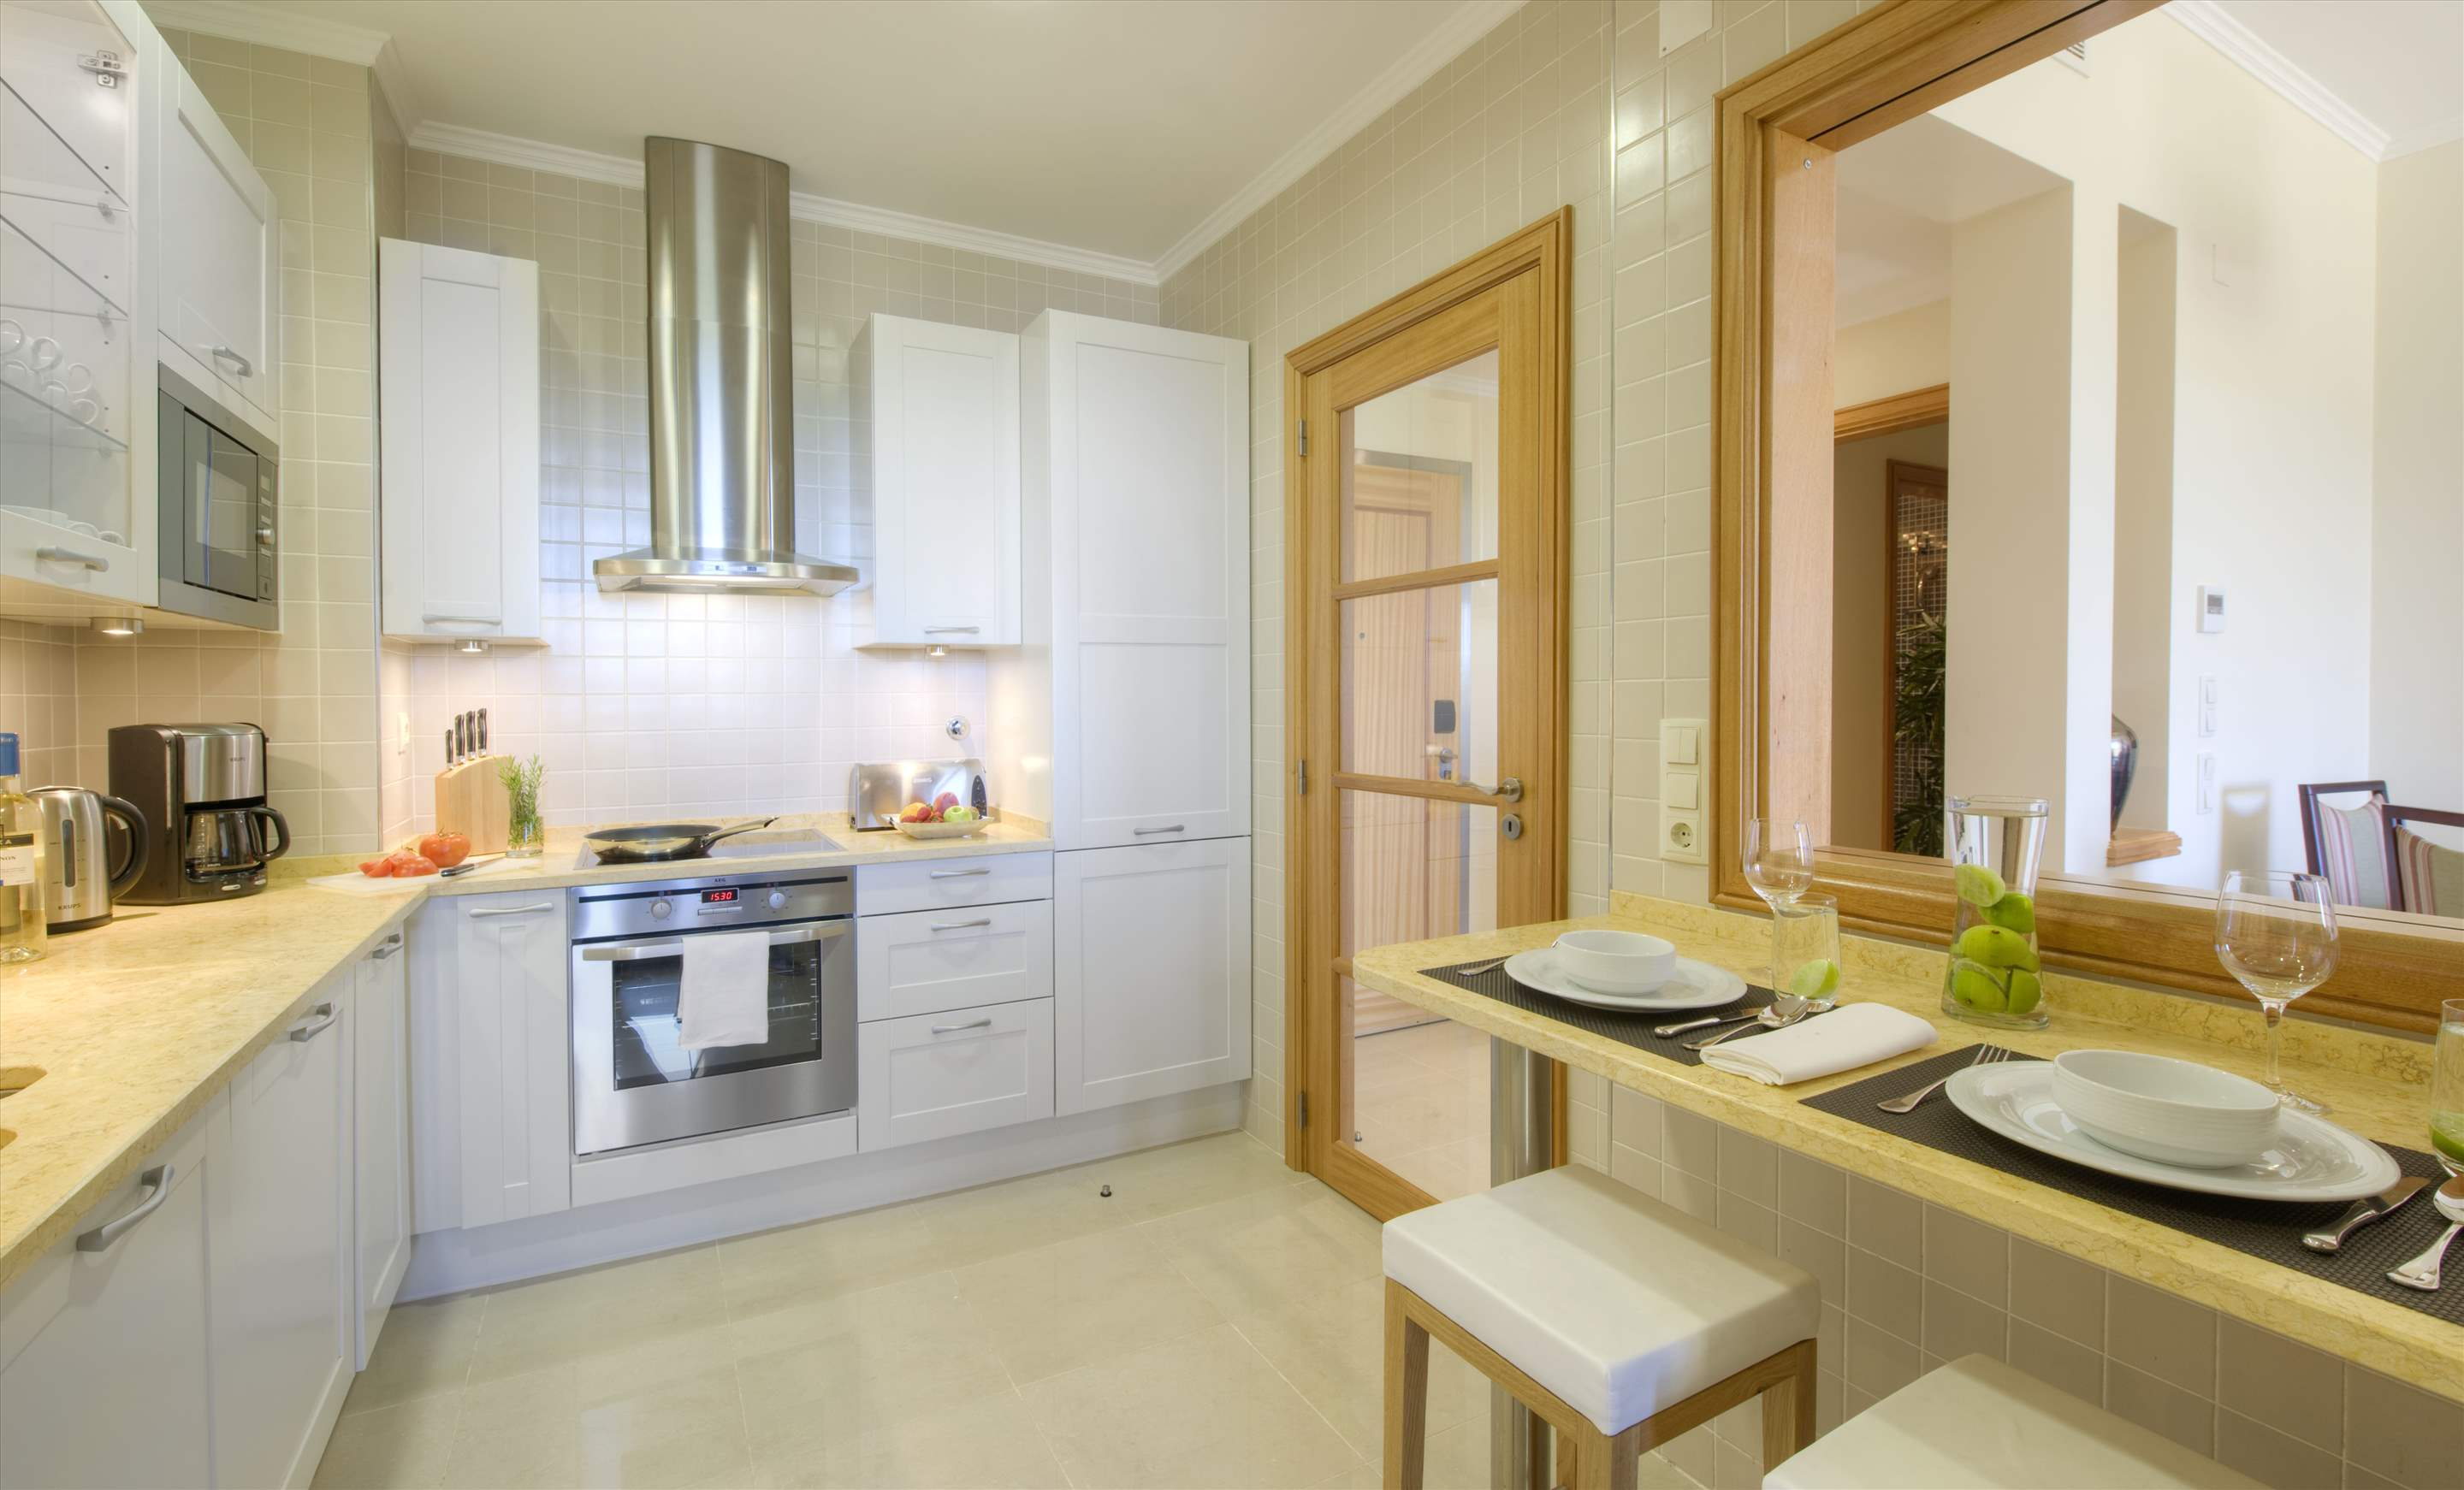 The Residences at Victoria by TIVOLI 3 Bed Apt , 3 bedroom apartment in The Residences at Victoria by TIVOLI, Algarve Photo #4